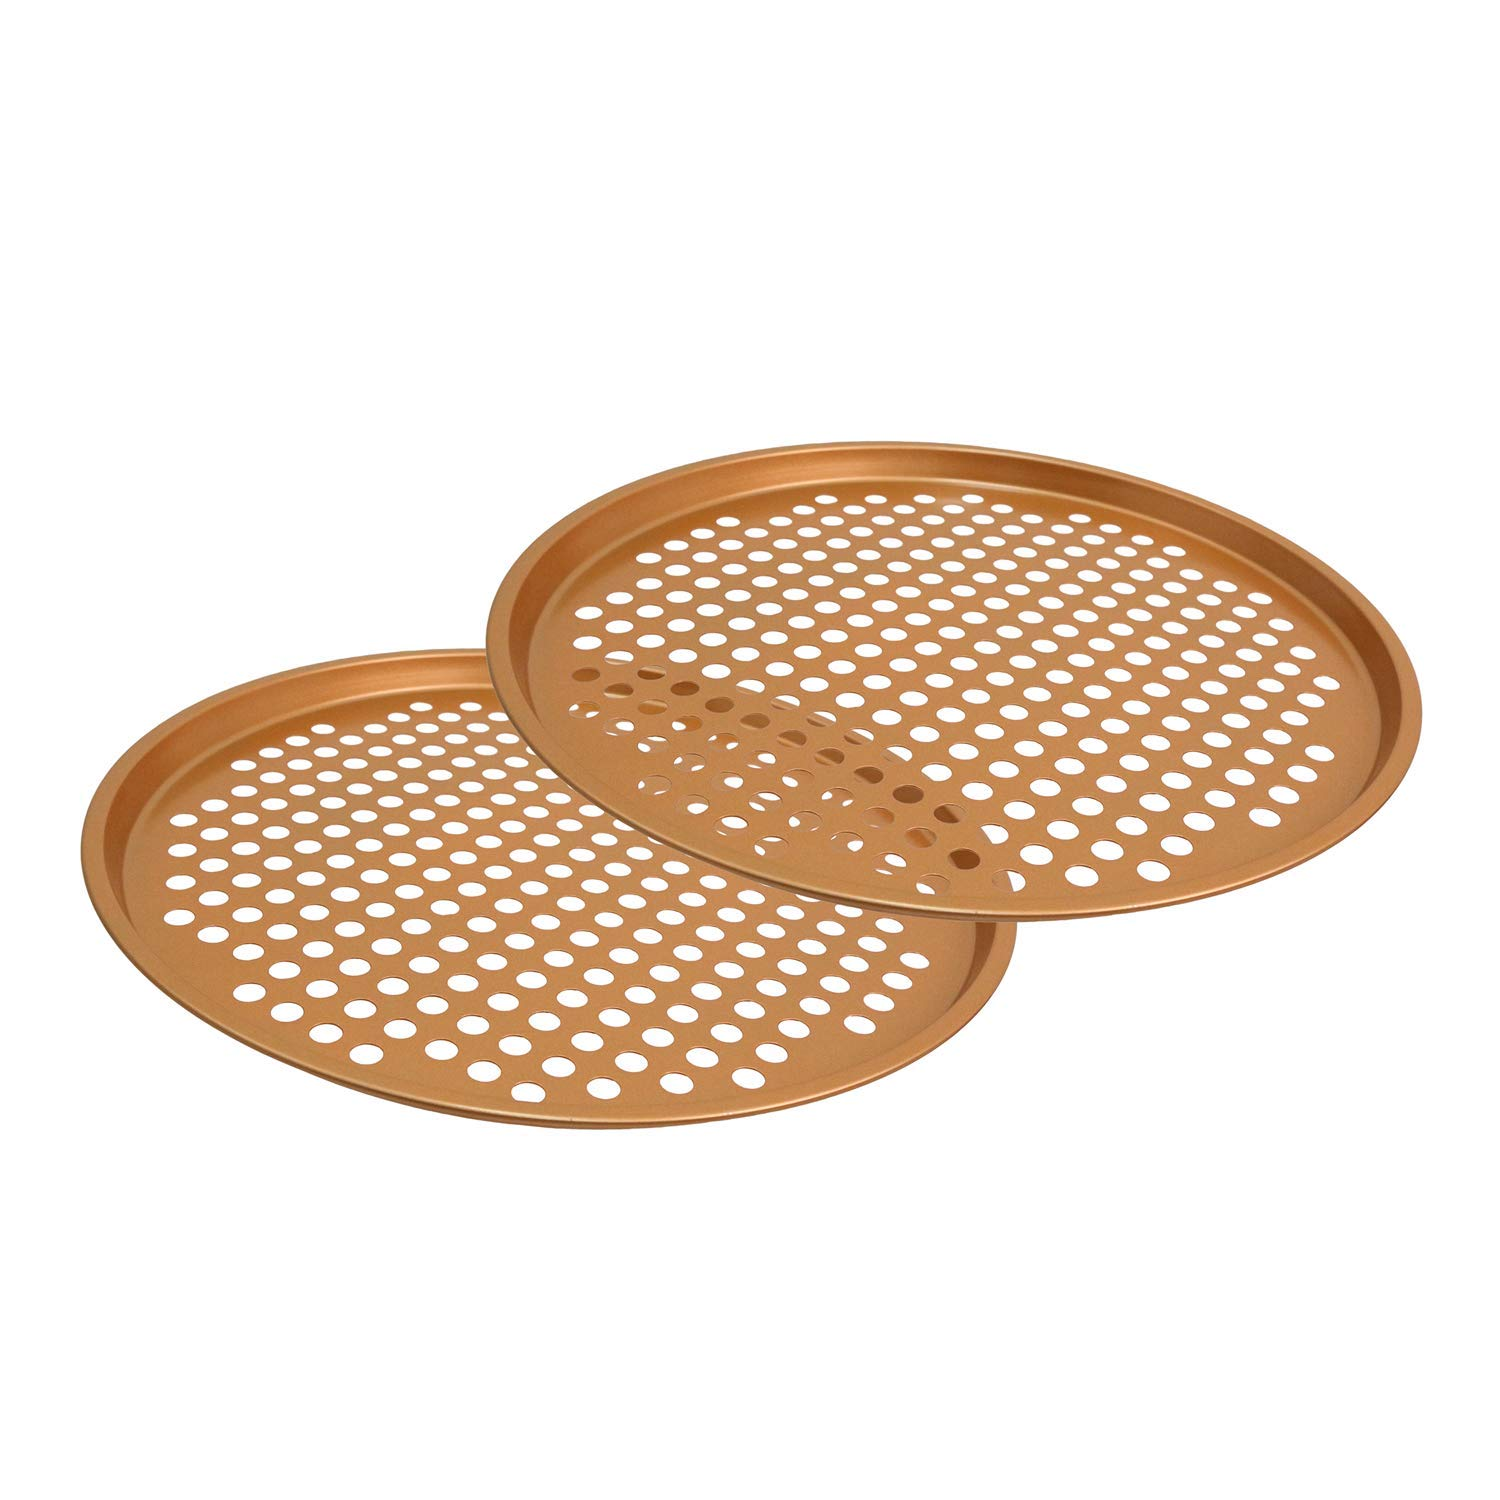 "CLM 13"" Ceramic Coated Copper Pizza Pan - Premium Nonstick Bakeware, Dishwasher & Oven Safe PTFE/PFOA Free - Baking Tray for Crispy Even Crust"